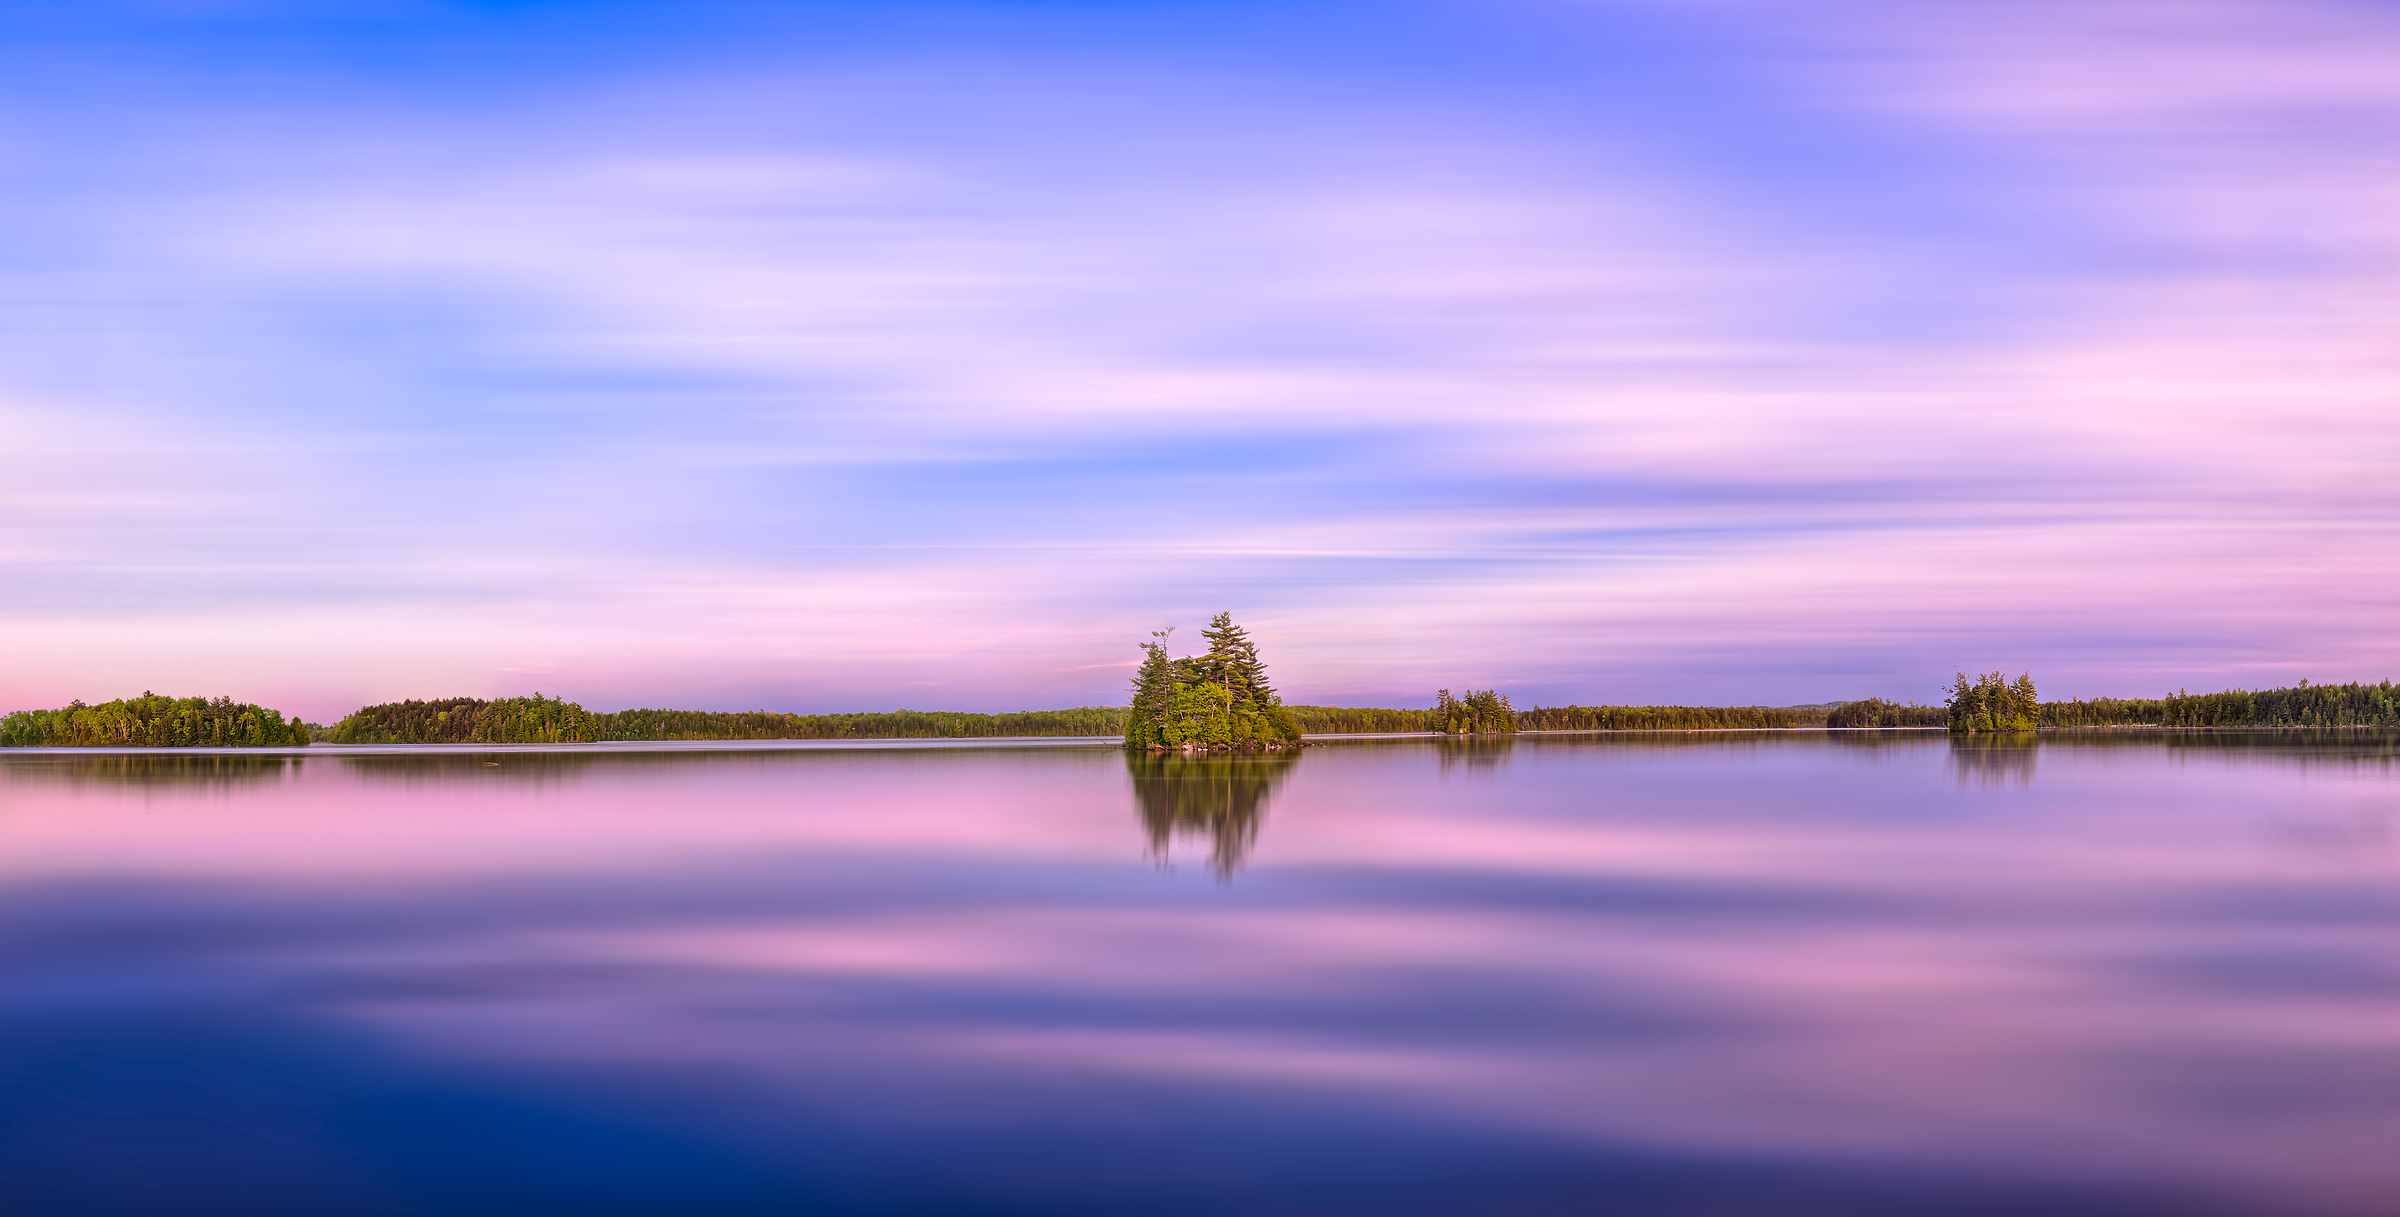 115 megapixels! A very high resolution, large-format VAST photo of sunset over Quakish Lake in New England; fine art landscape photograph created by Aaron Priest in Millinocket, Maine